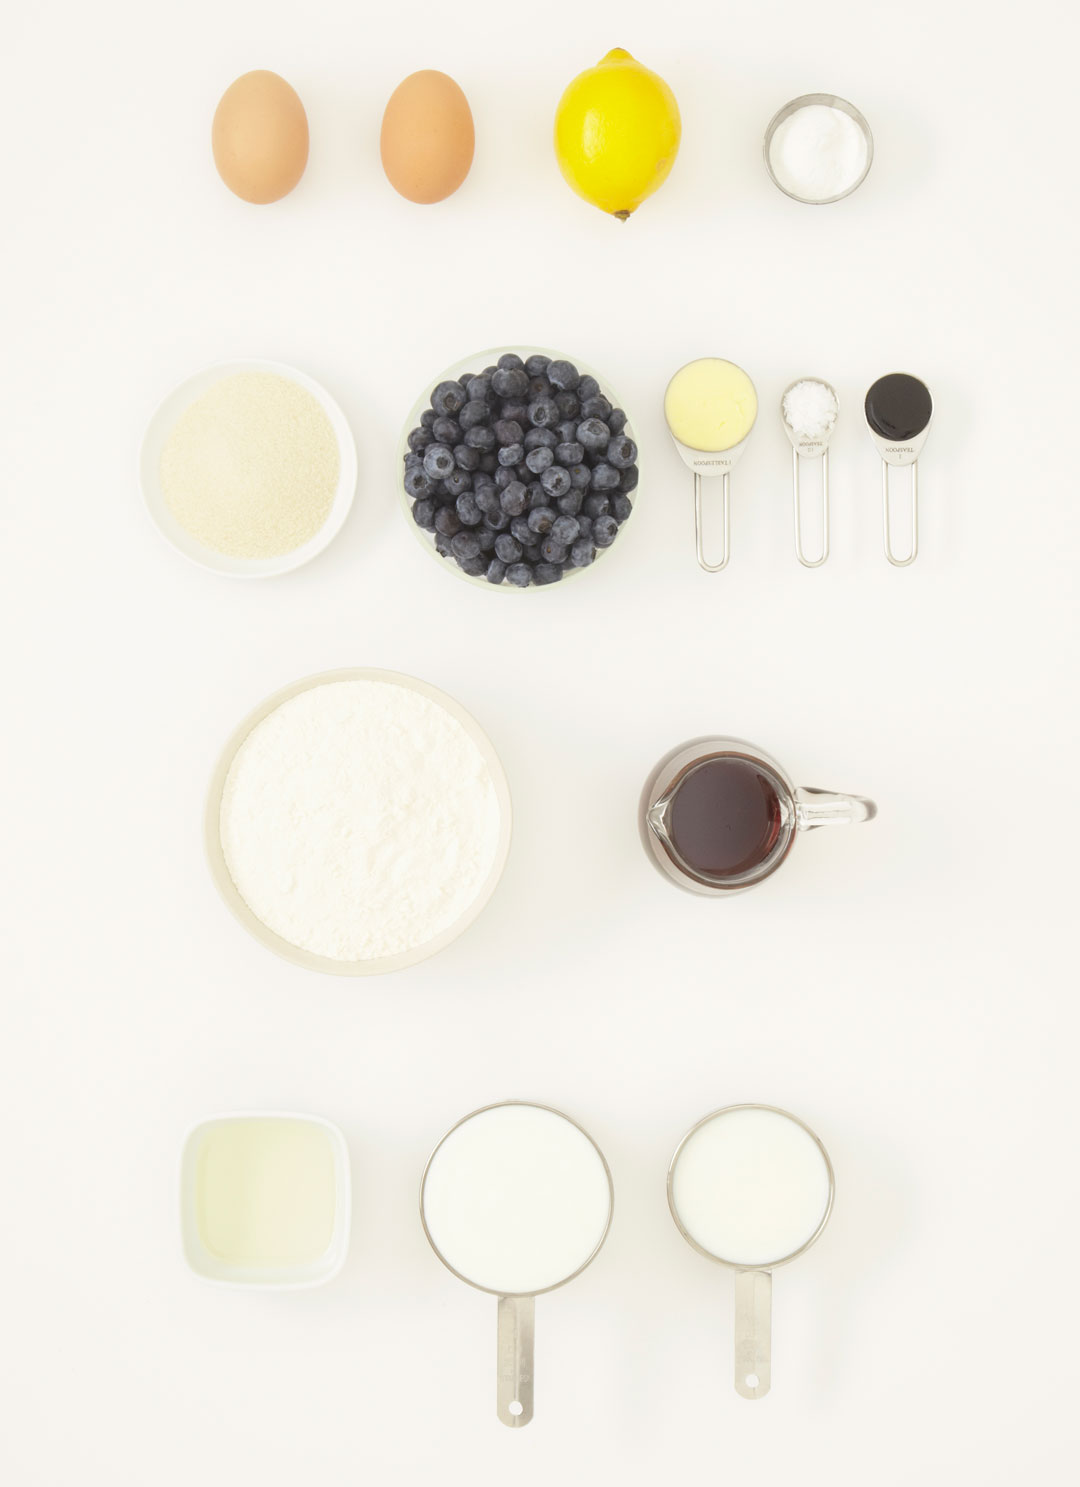 Ingredients for buttermilk pancakes with blueberries and syrup, as featured in Simple & Classic